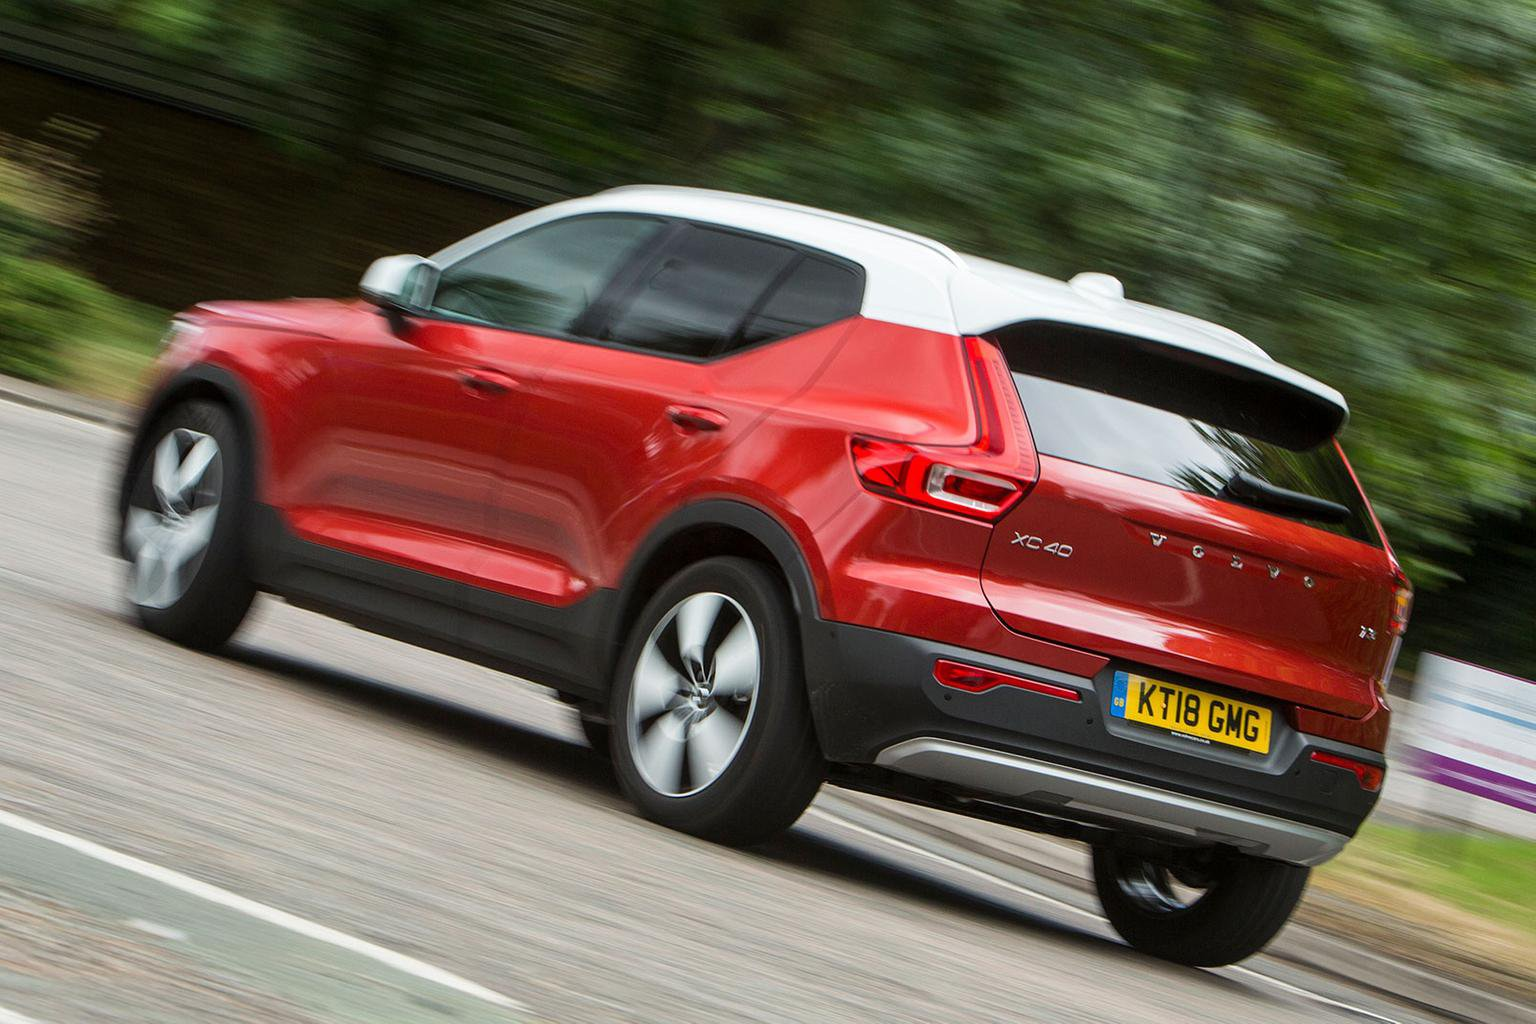 2018 Volvo XC40 T3 review - verdict